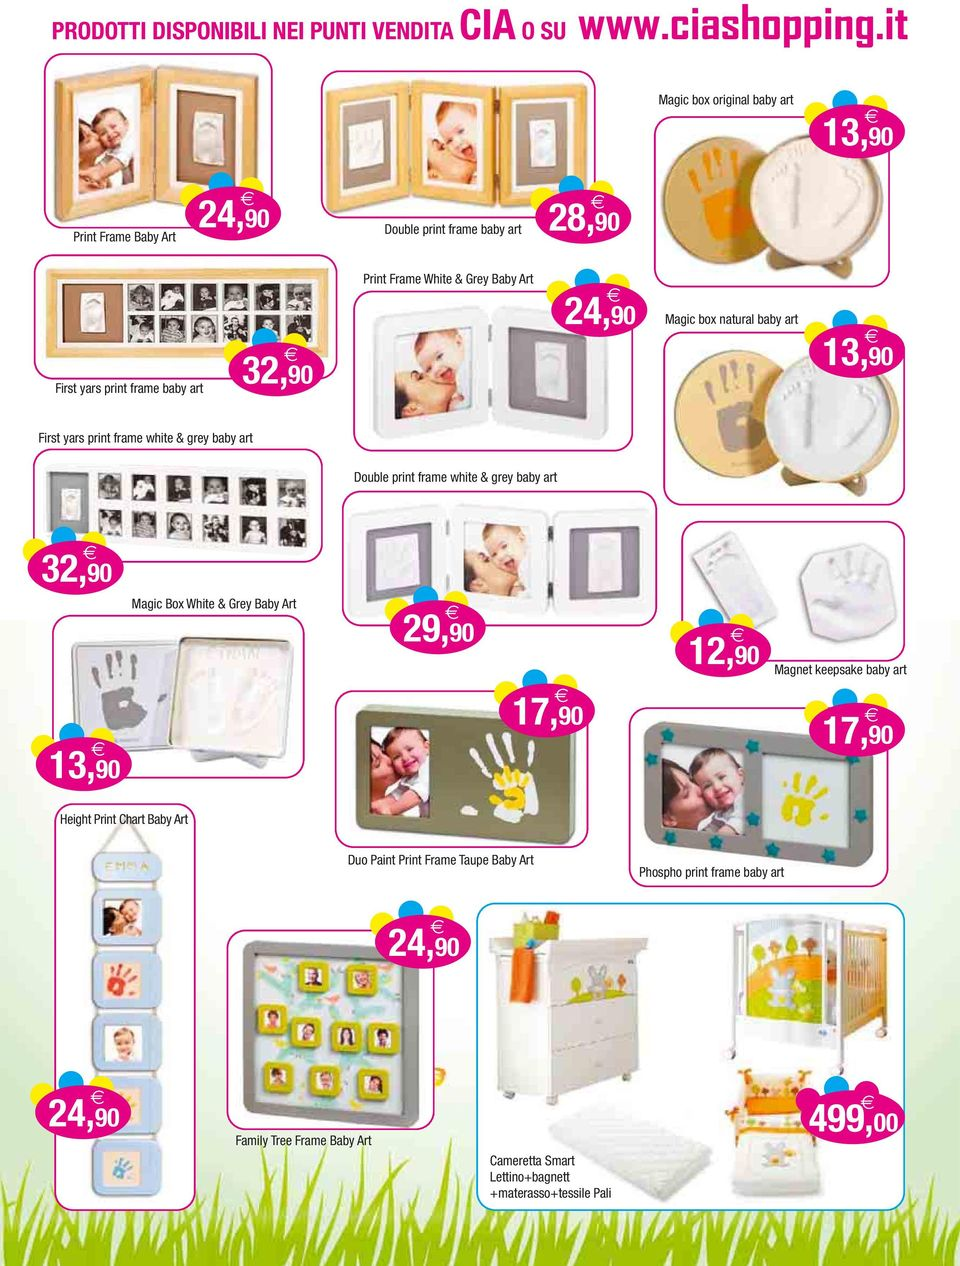 art 32,90 13,90 Magic Box White & Grey Baby Art 29,90 17,90 12,90 Magnet keepsake baby art 17,90 Height Print Chart Baby Art Duo Paint